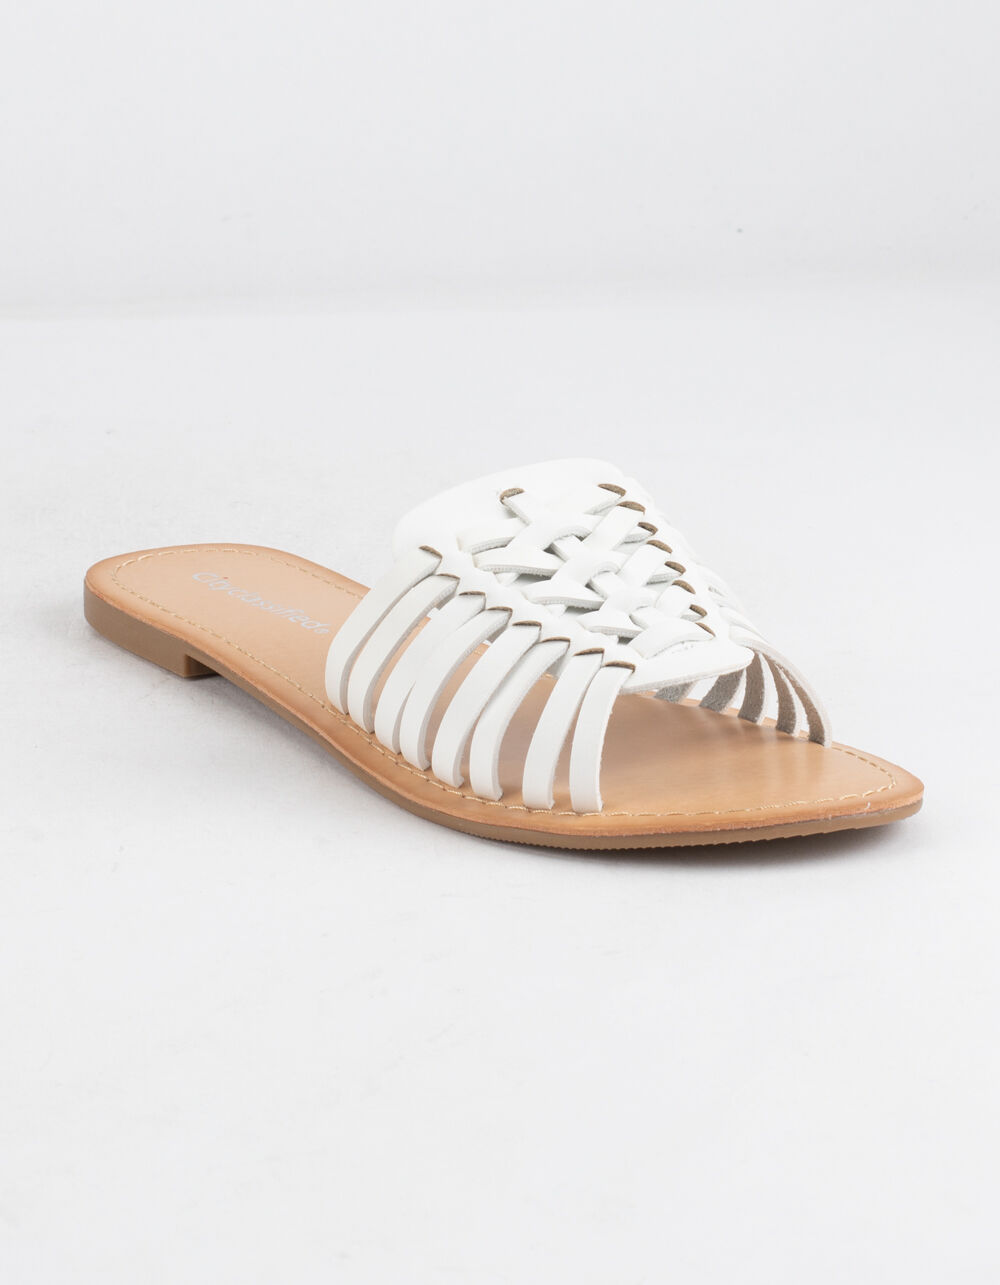 CITY CLASSIFIED Basket Weave White Sandals